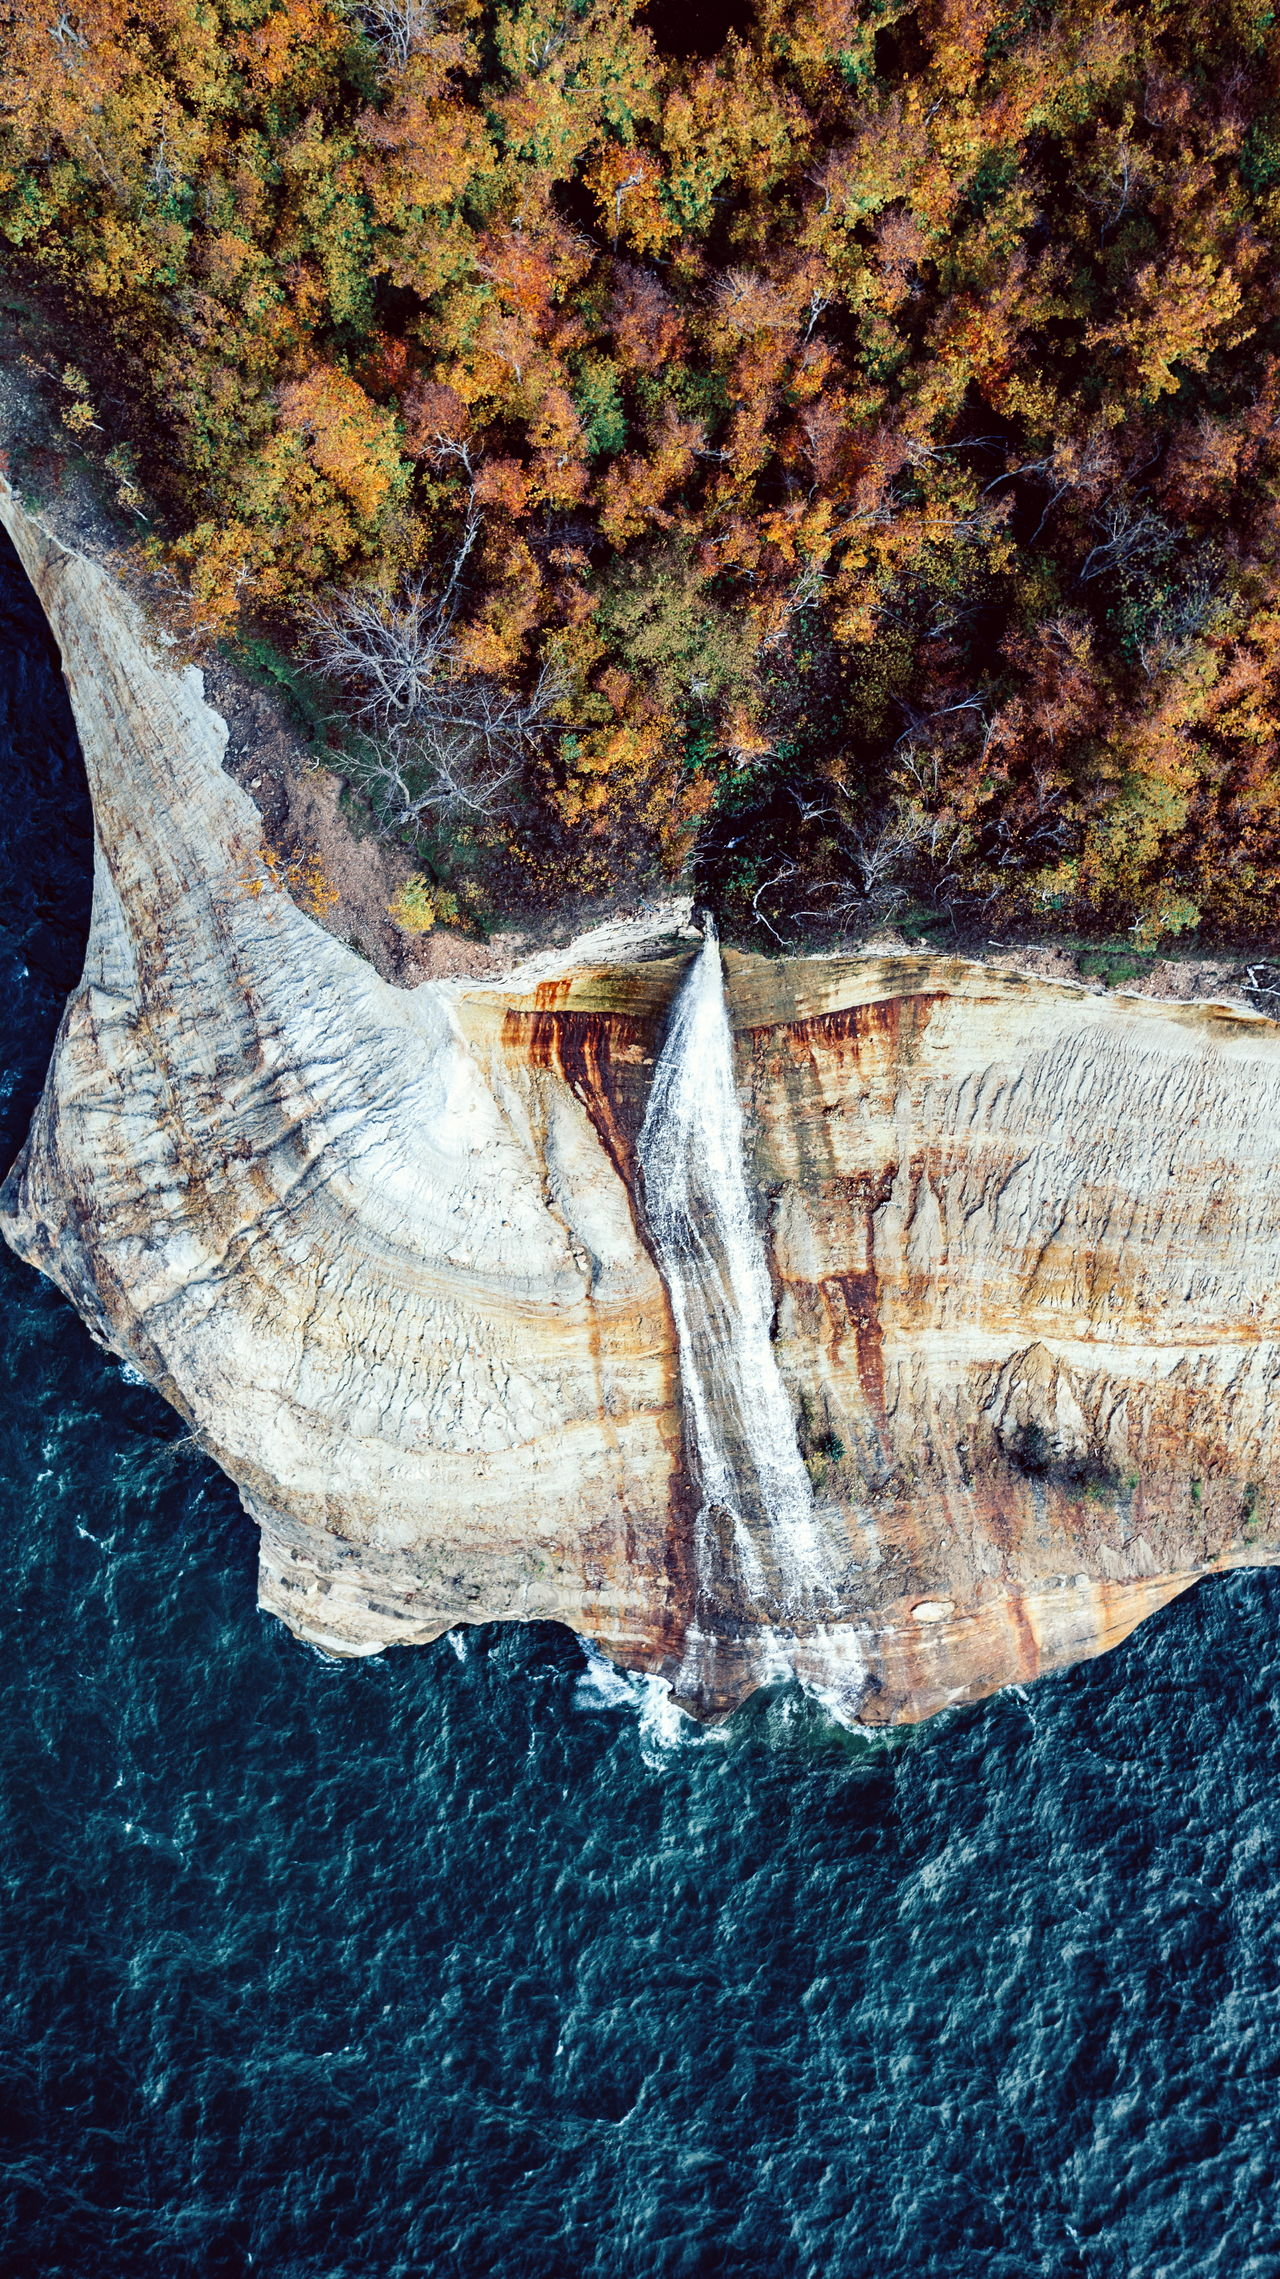 fall Fall Beauty Autumn Autumn colors waterfall Nature outdoors mountain water blue waves Drone birds eye view Tranquility adventure Wanderlust beauty in Nature Fresh on Market 2017